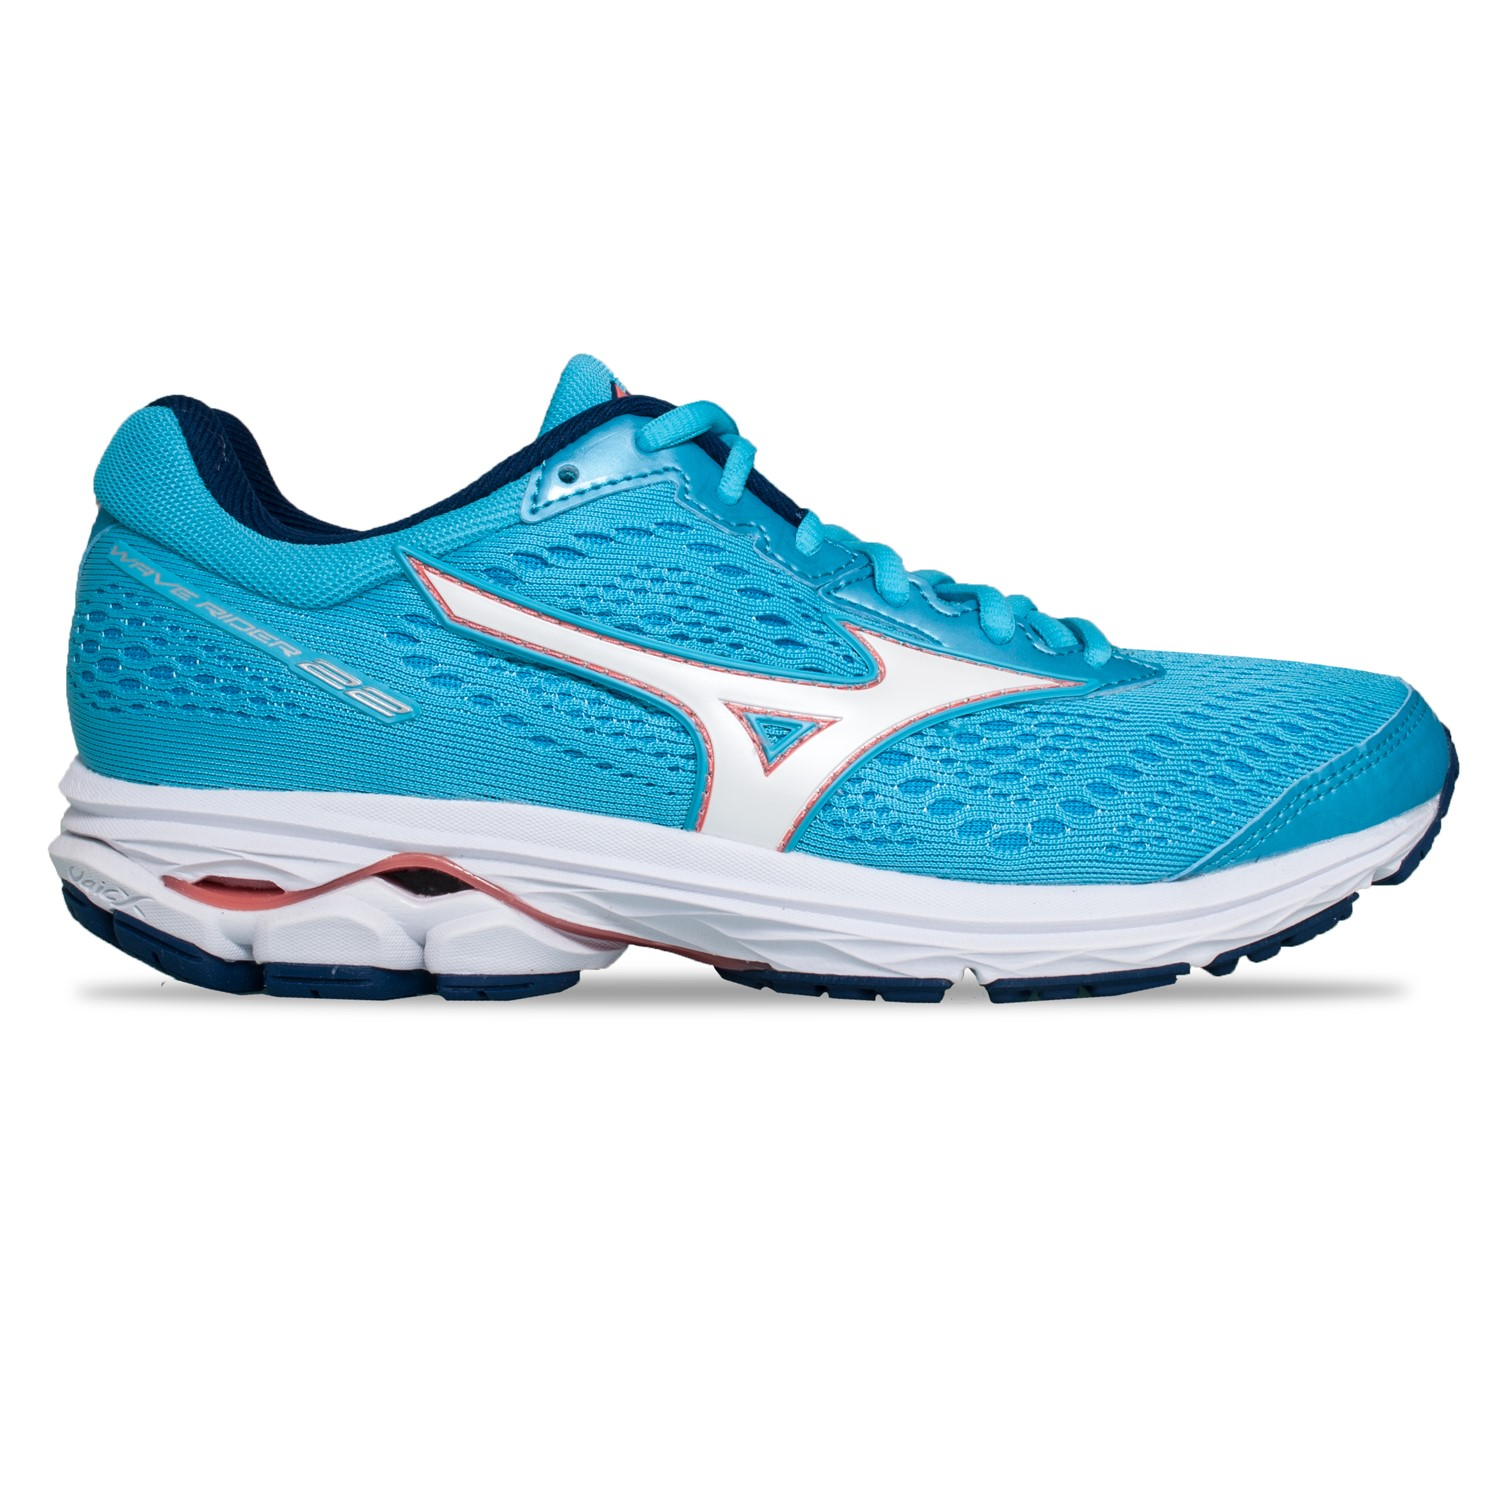 60f1de707280 Mizuno Wave Rider 22 - Womens Running Shoes - Blue Atoll/White/Peach ...